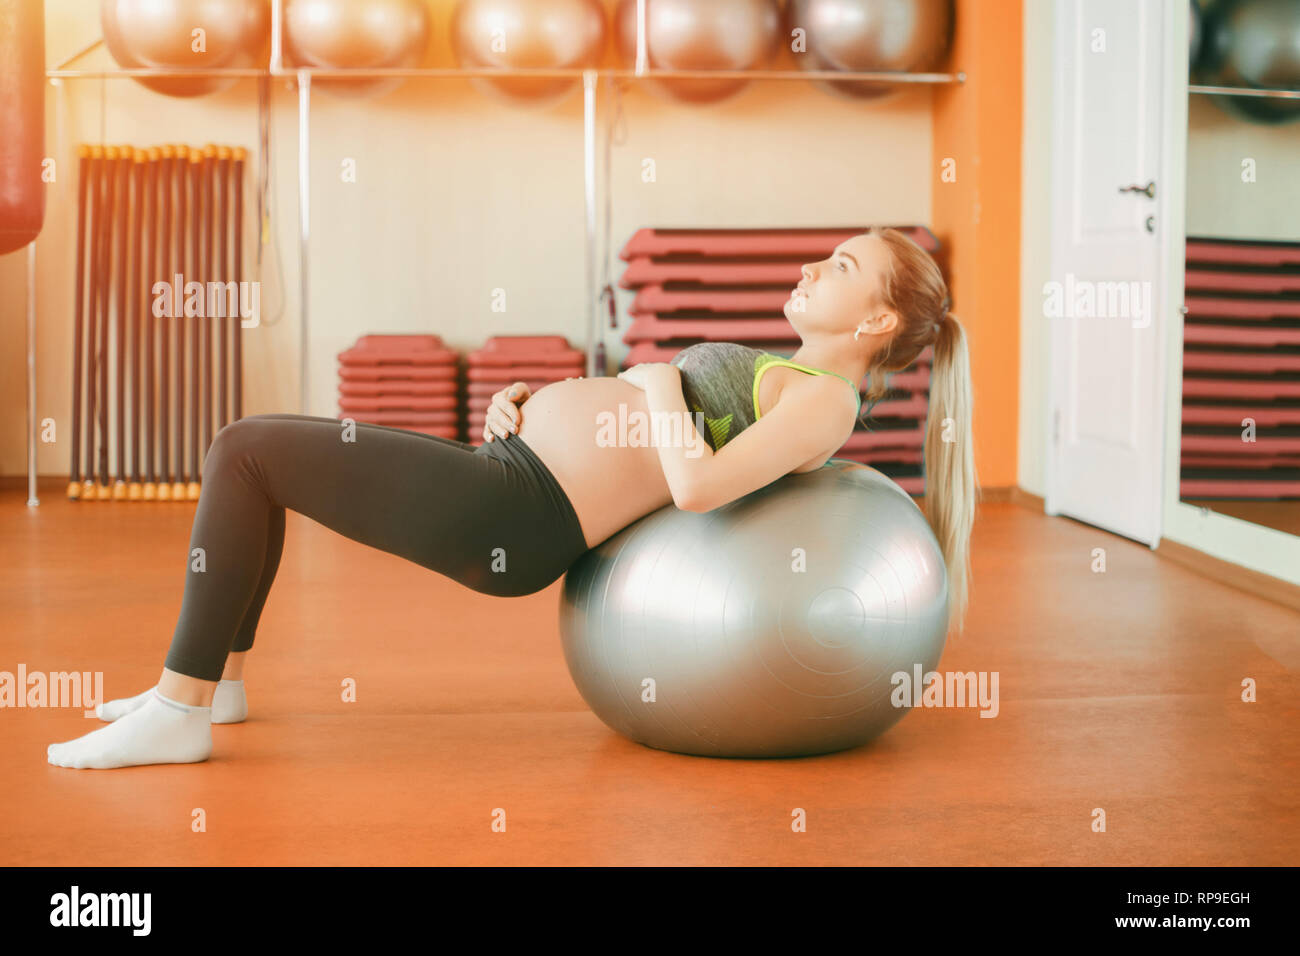 Yoga for pregnant women. Young beautiful pregnant girl in sportswear doing yoga on fitball - Stock Image